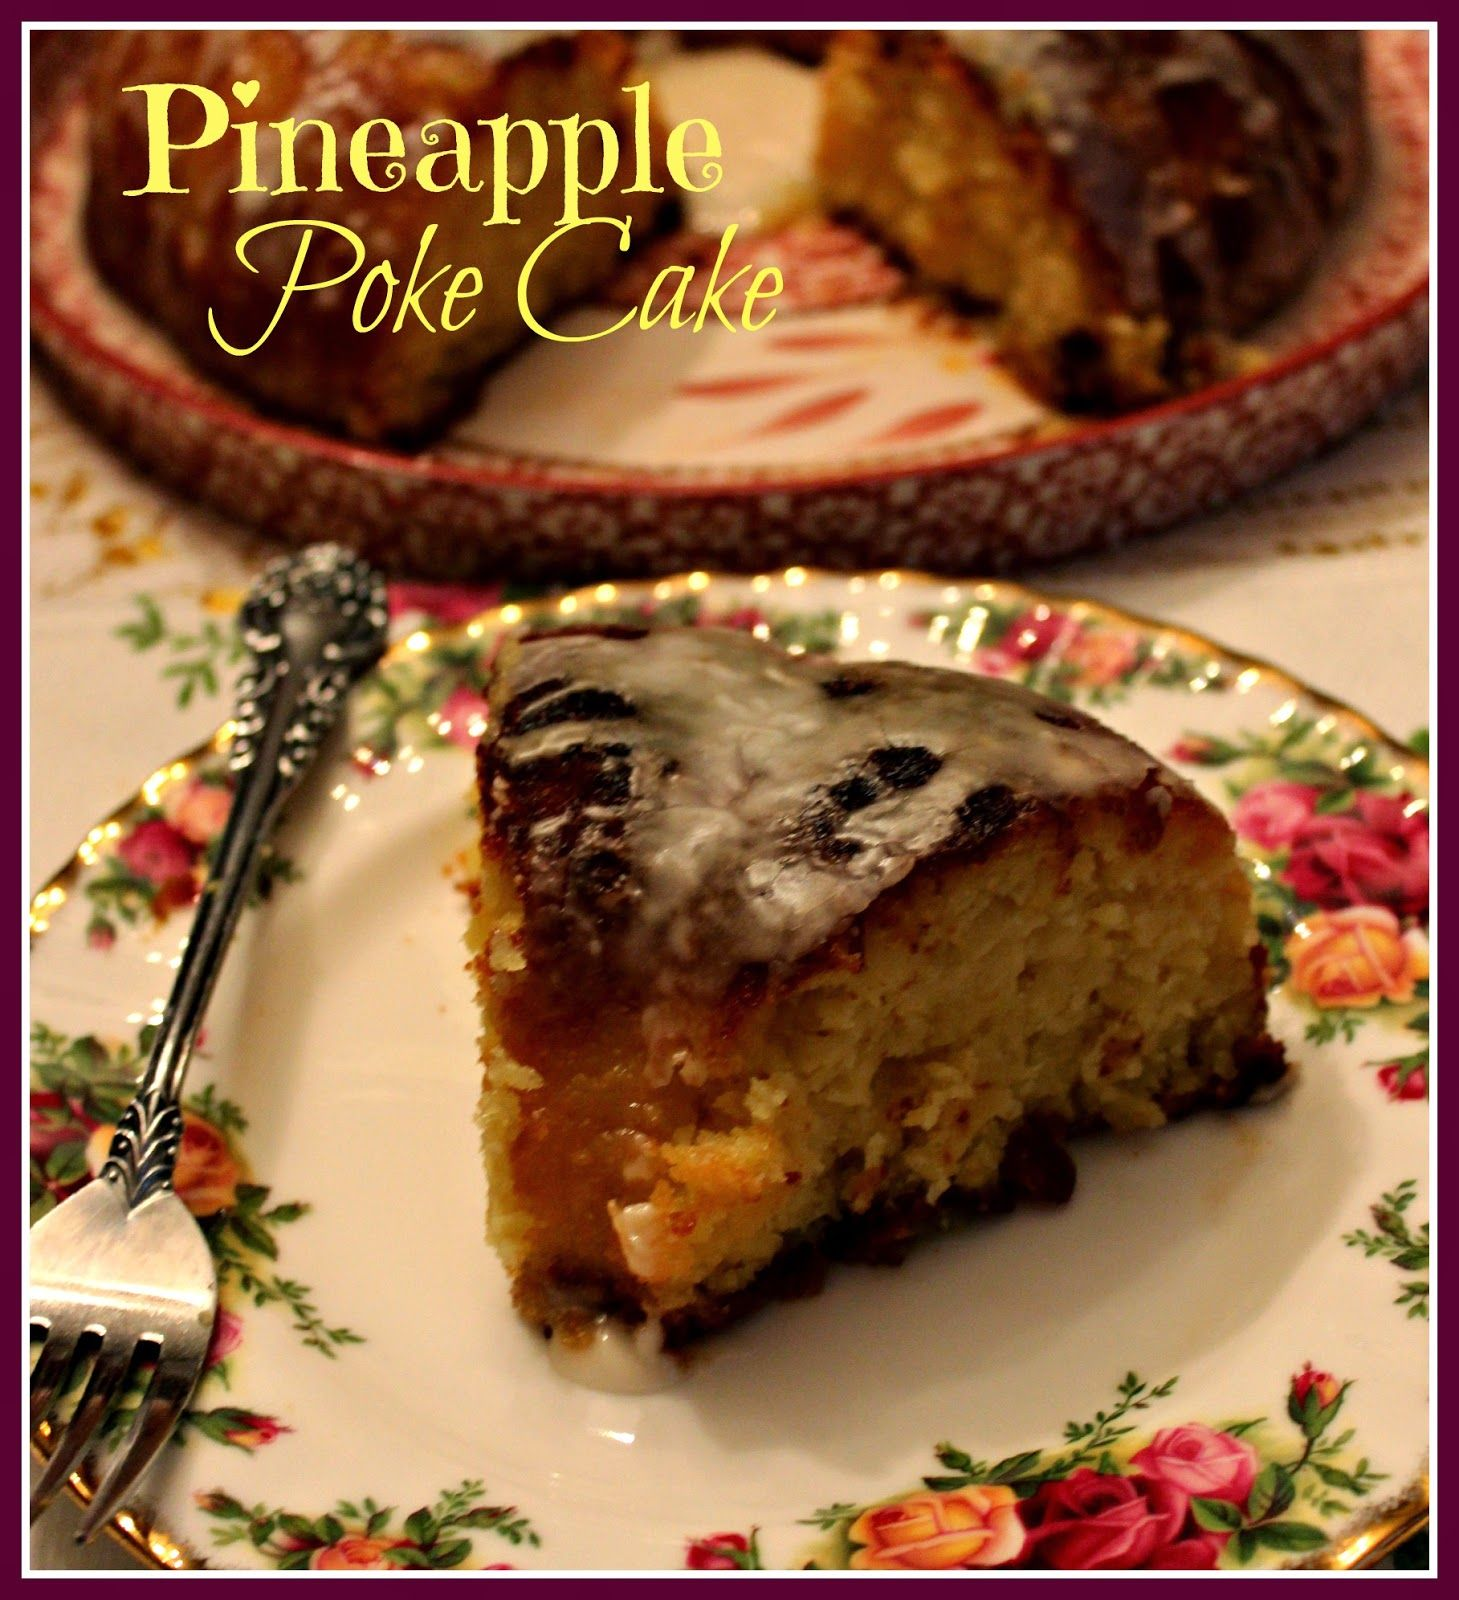 Pineapple Cake Frosting